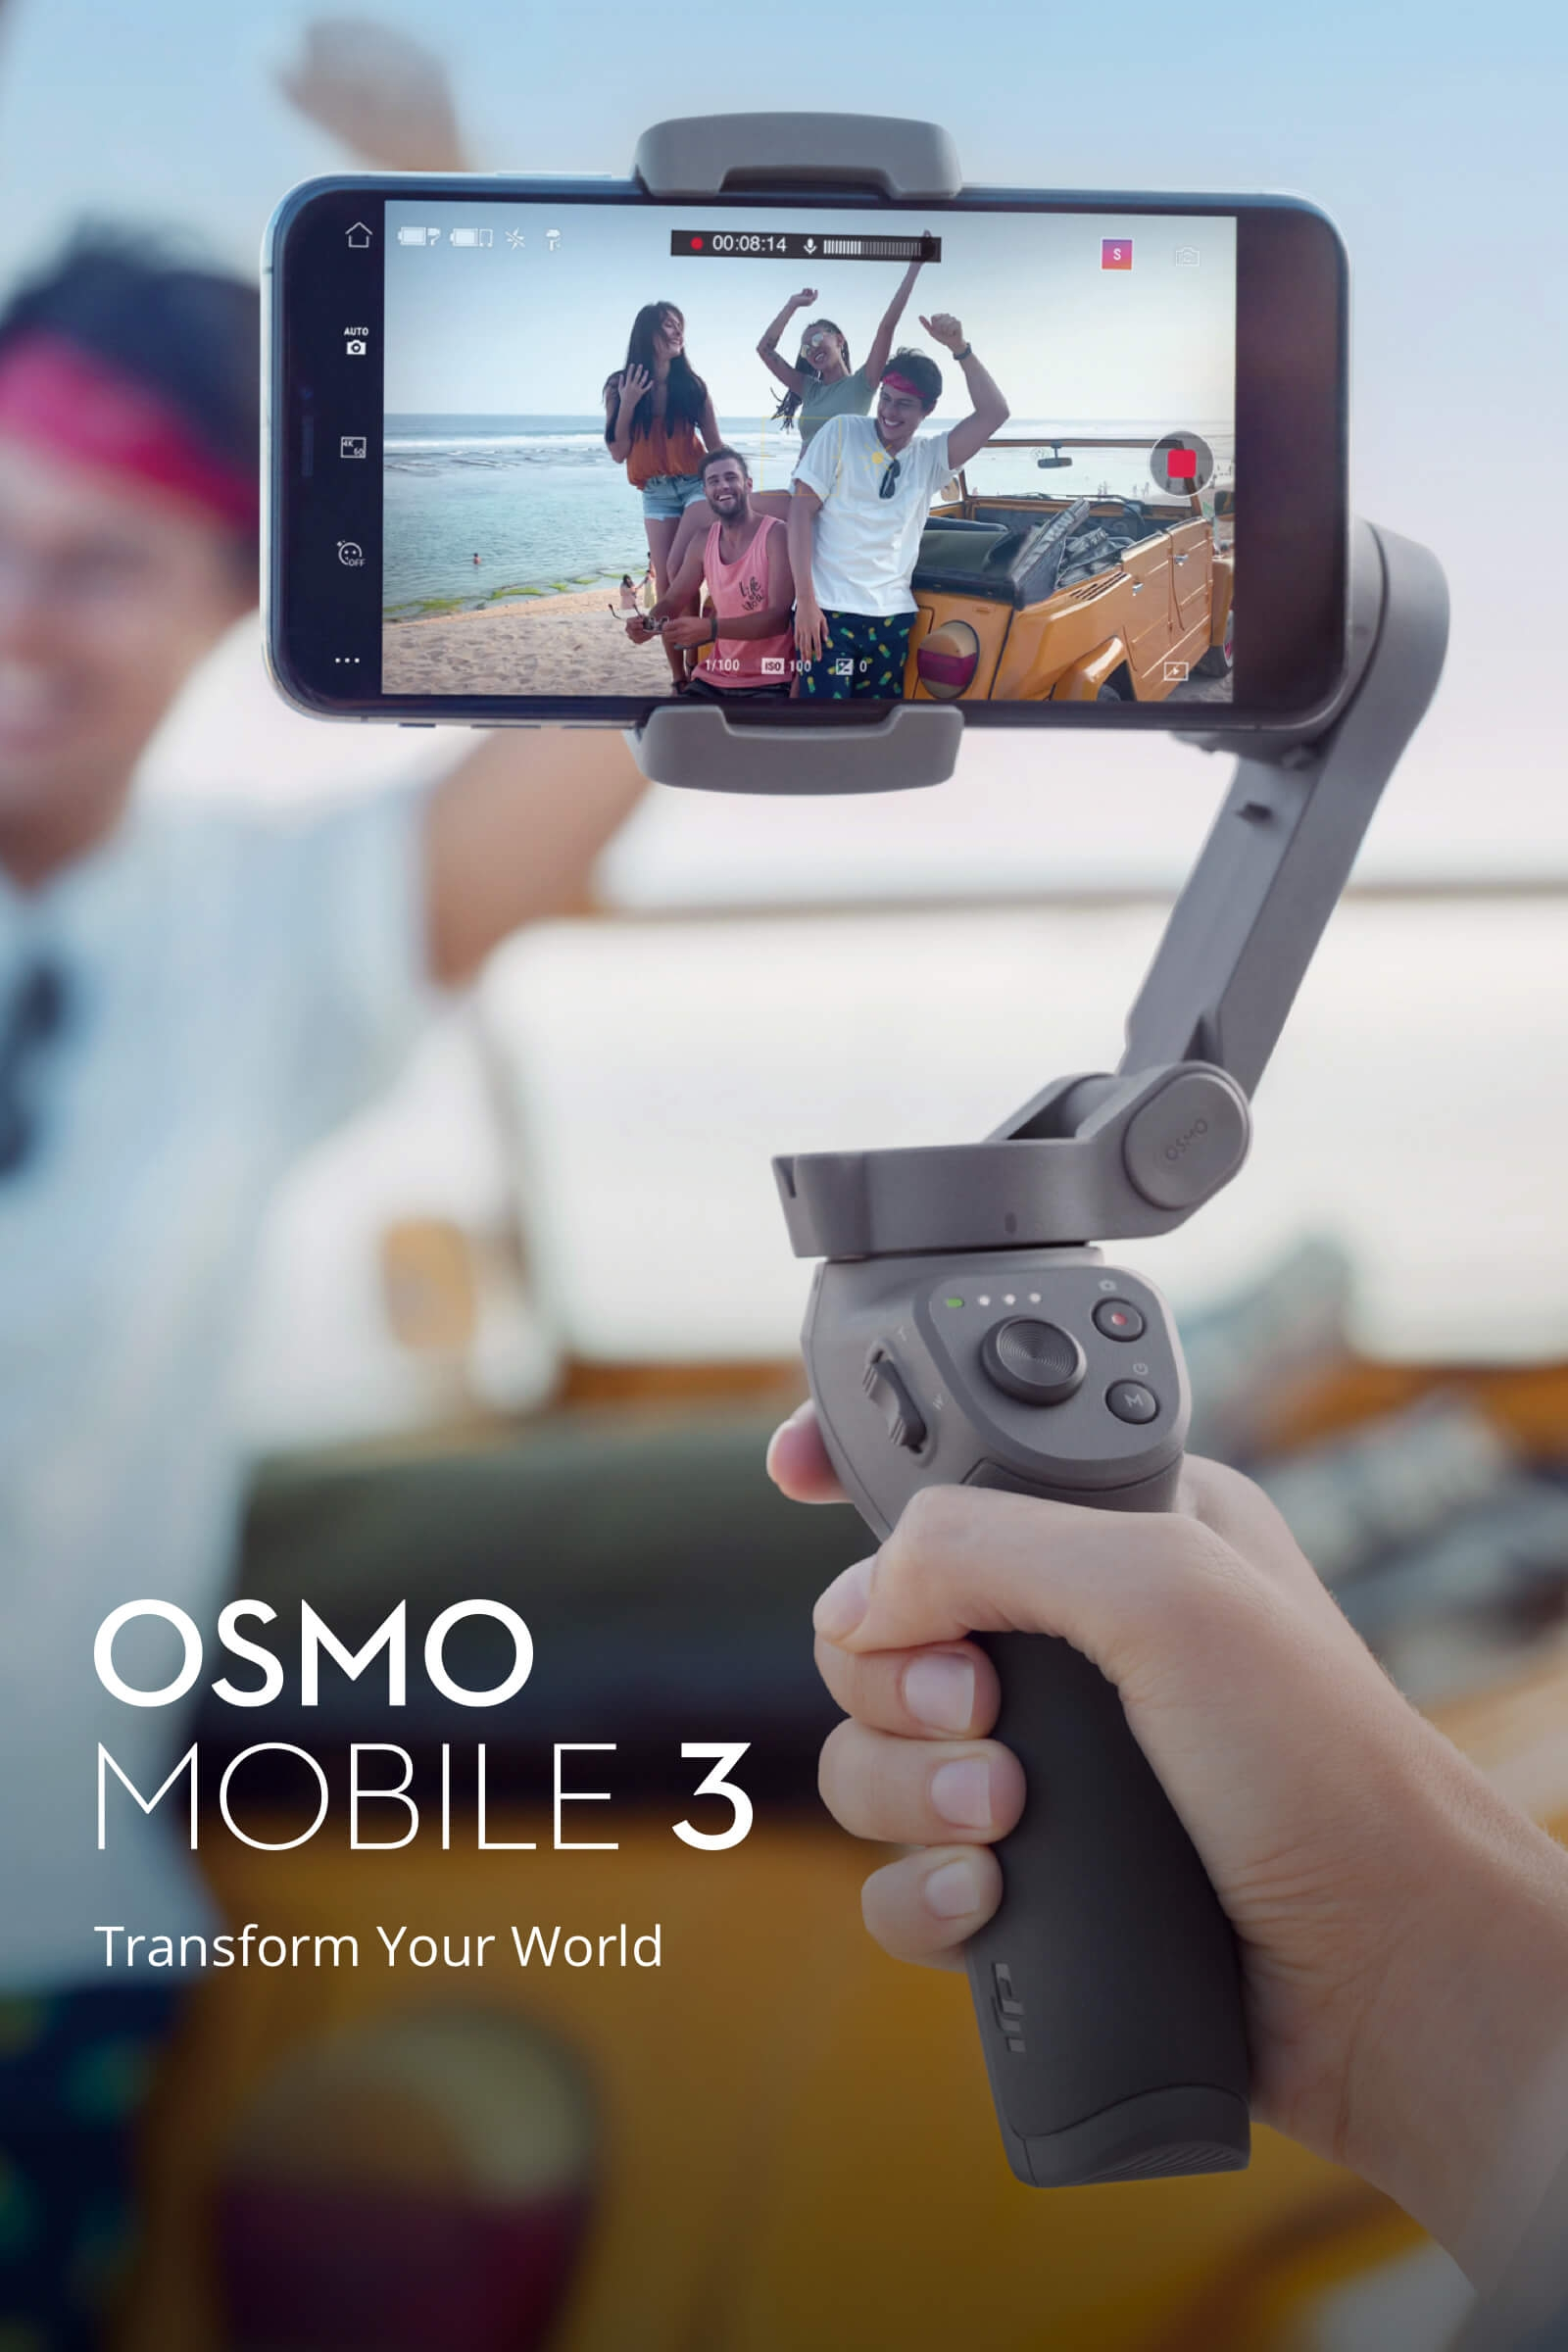 $129.99 for DJI Osmo Mobile 3 Foldable Active Track 3.0 Handheld Gimbal Portable Stabilizer Gesture Control Vlog Story Mode for Smartphones Huawei